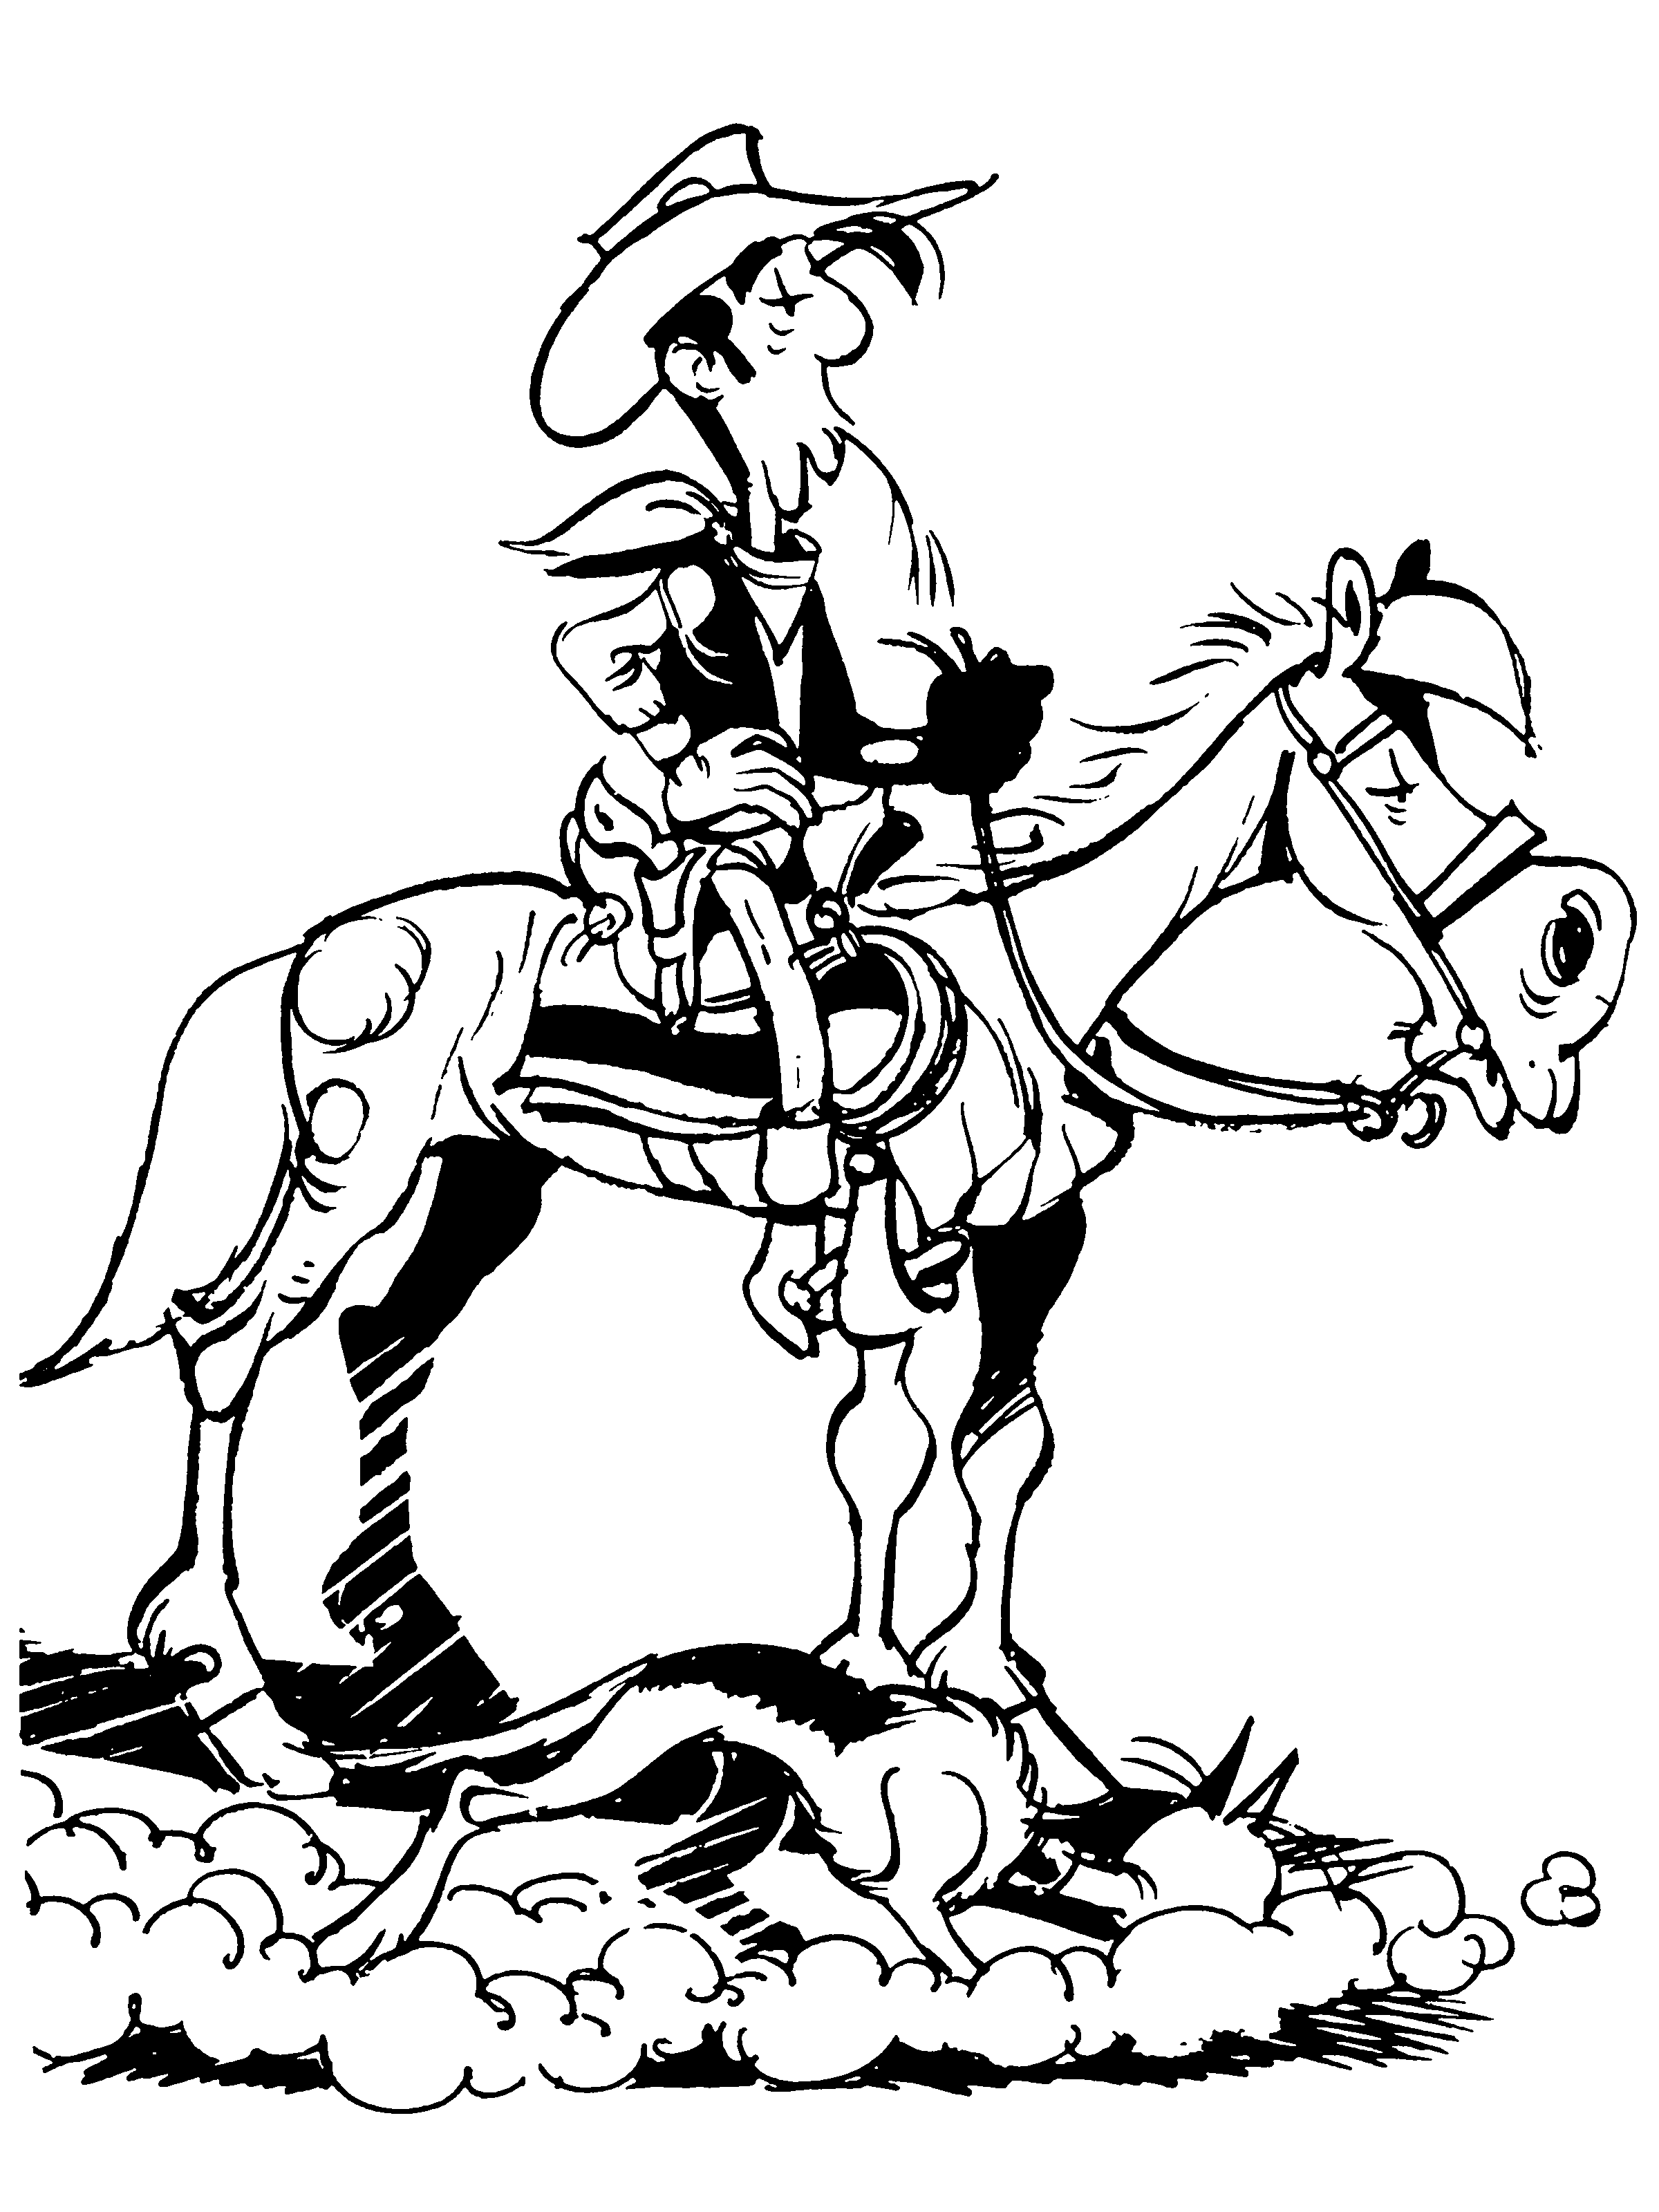 Pin By Deanne Comstock On Cowboy Lucky Luke Horse Coloring Pages Horse Coloring [ 3200 x 2400 Pixel ]